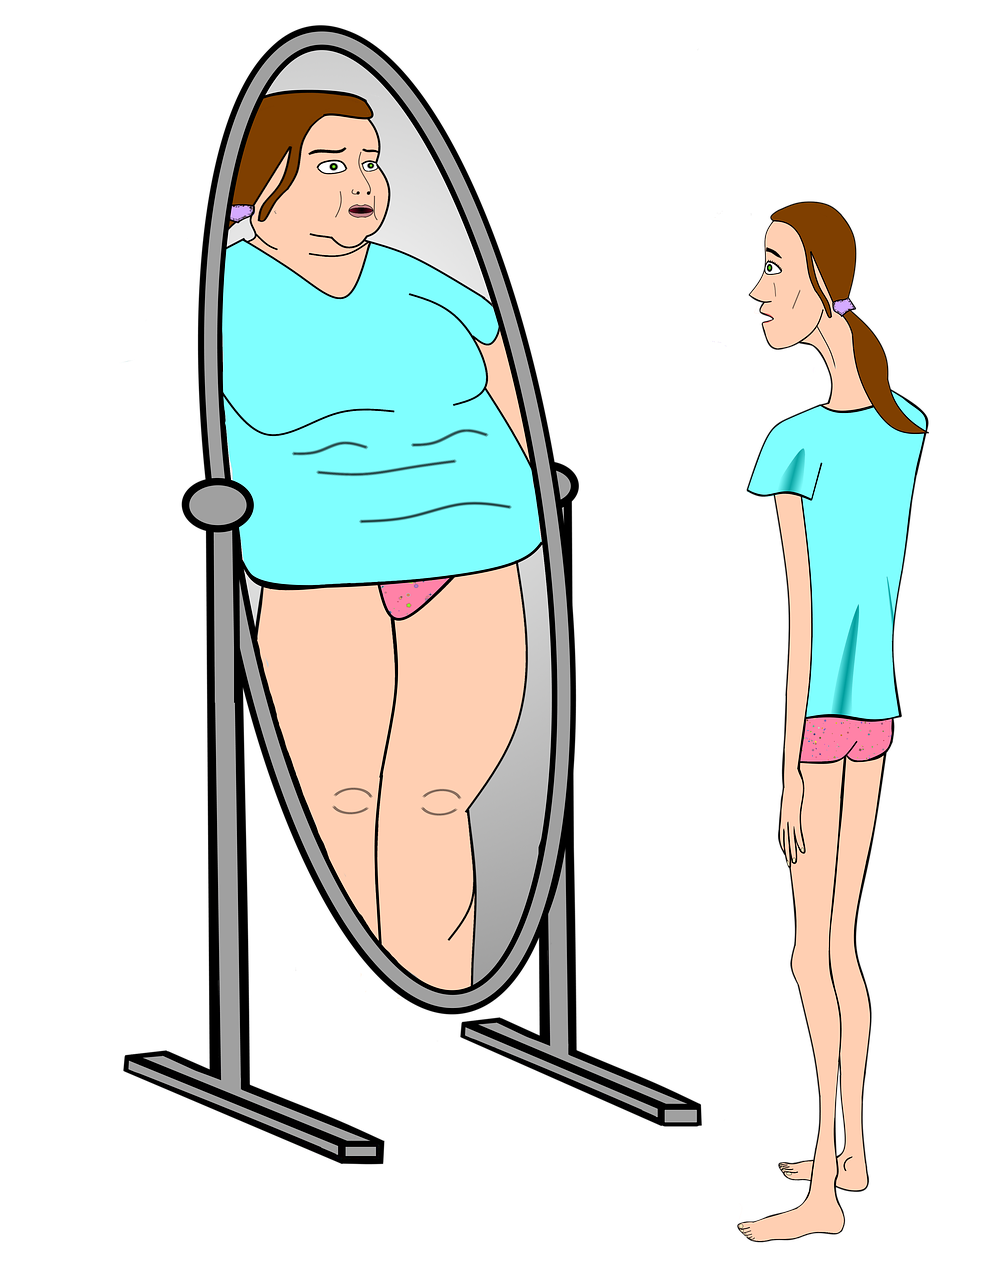 What Eating Disorders Does Addiction Helper Treat